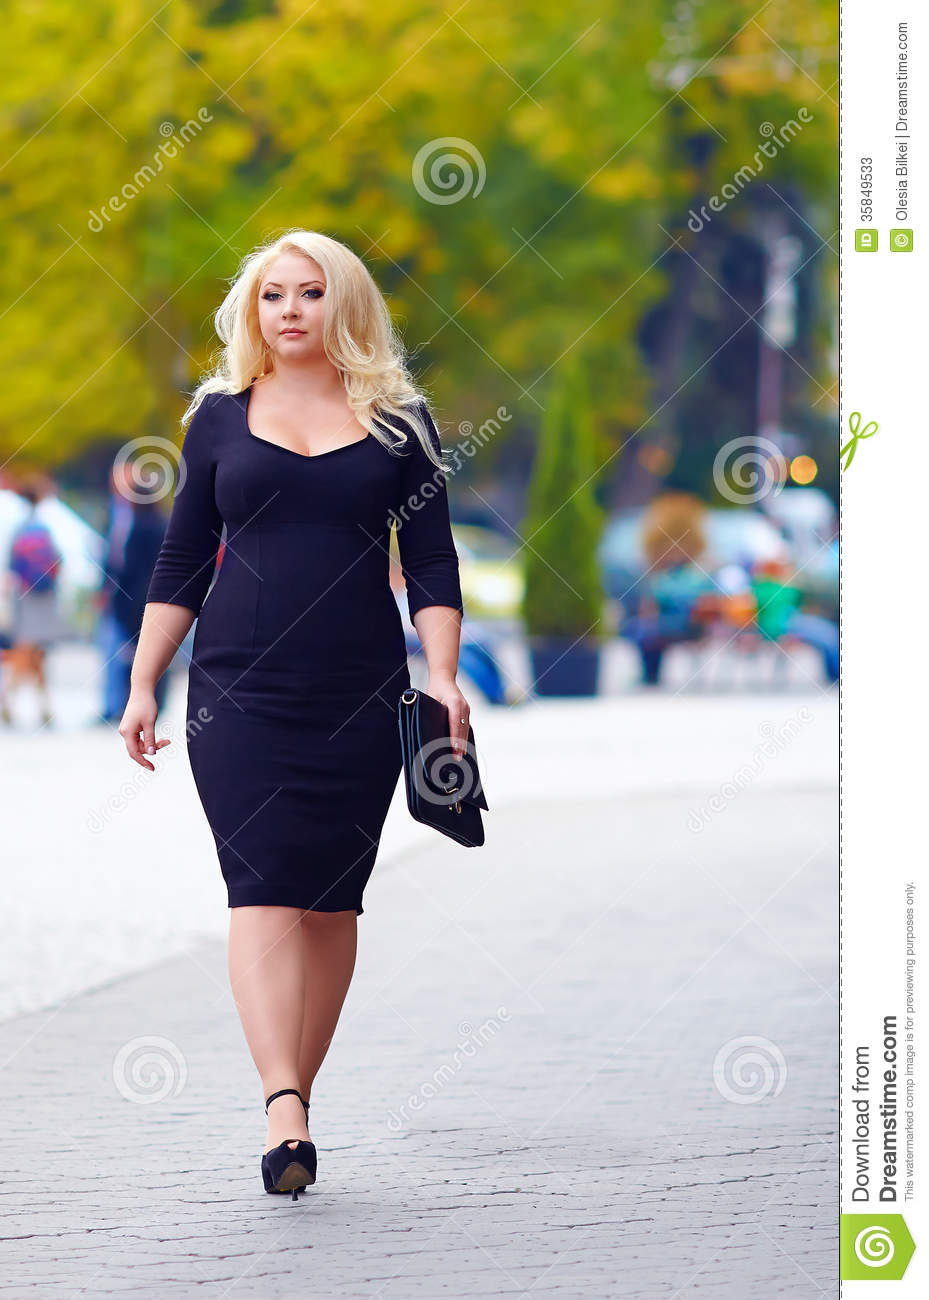 Confident Overweight Woman Walking The City Street Stock